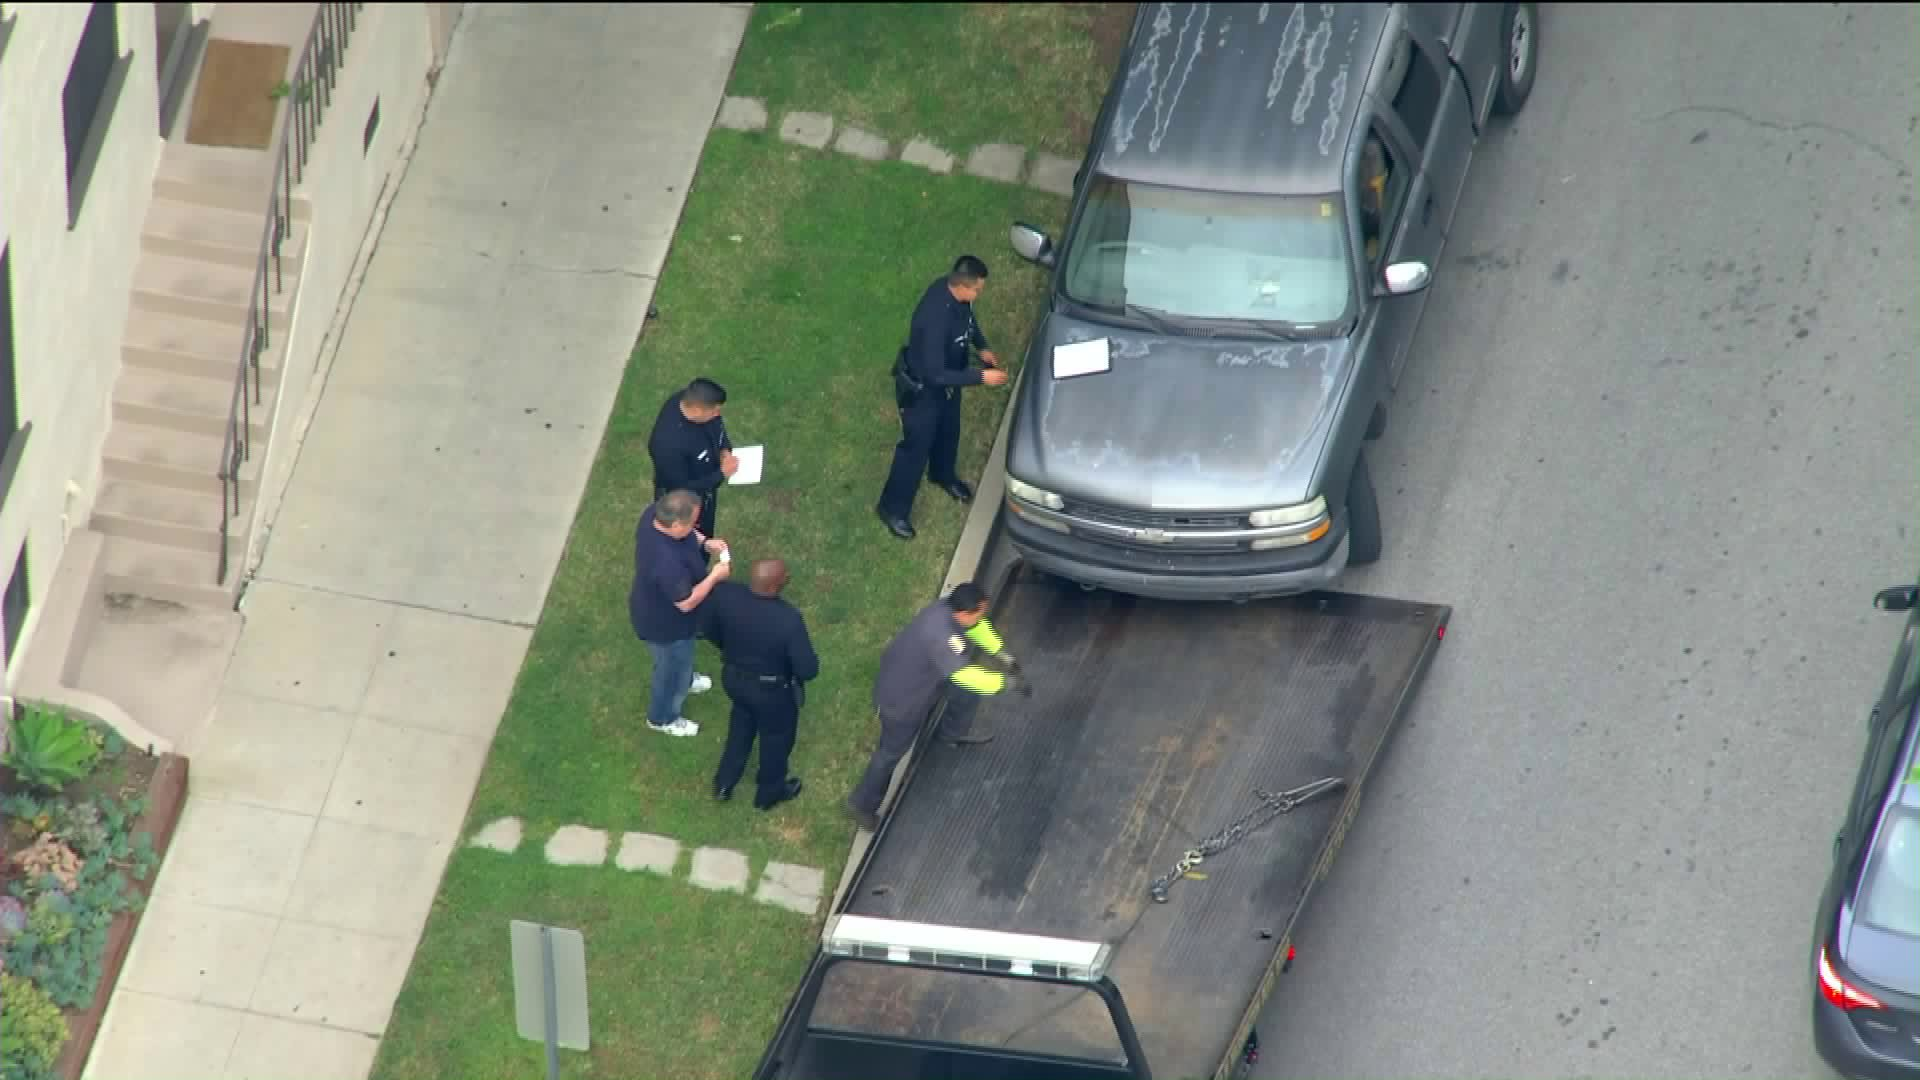 A pickup truck was recovered in Beverly Hills after it was carjacked in L.A's Mid-Wilshire neighborhood two hours earlier with a 7-year-old boy inside on May 23, 2019. The suspect and the child remained missing. (Credit: KTLA)